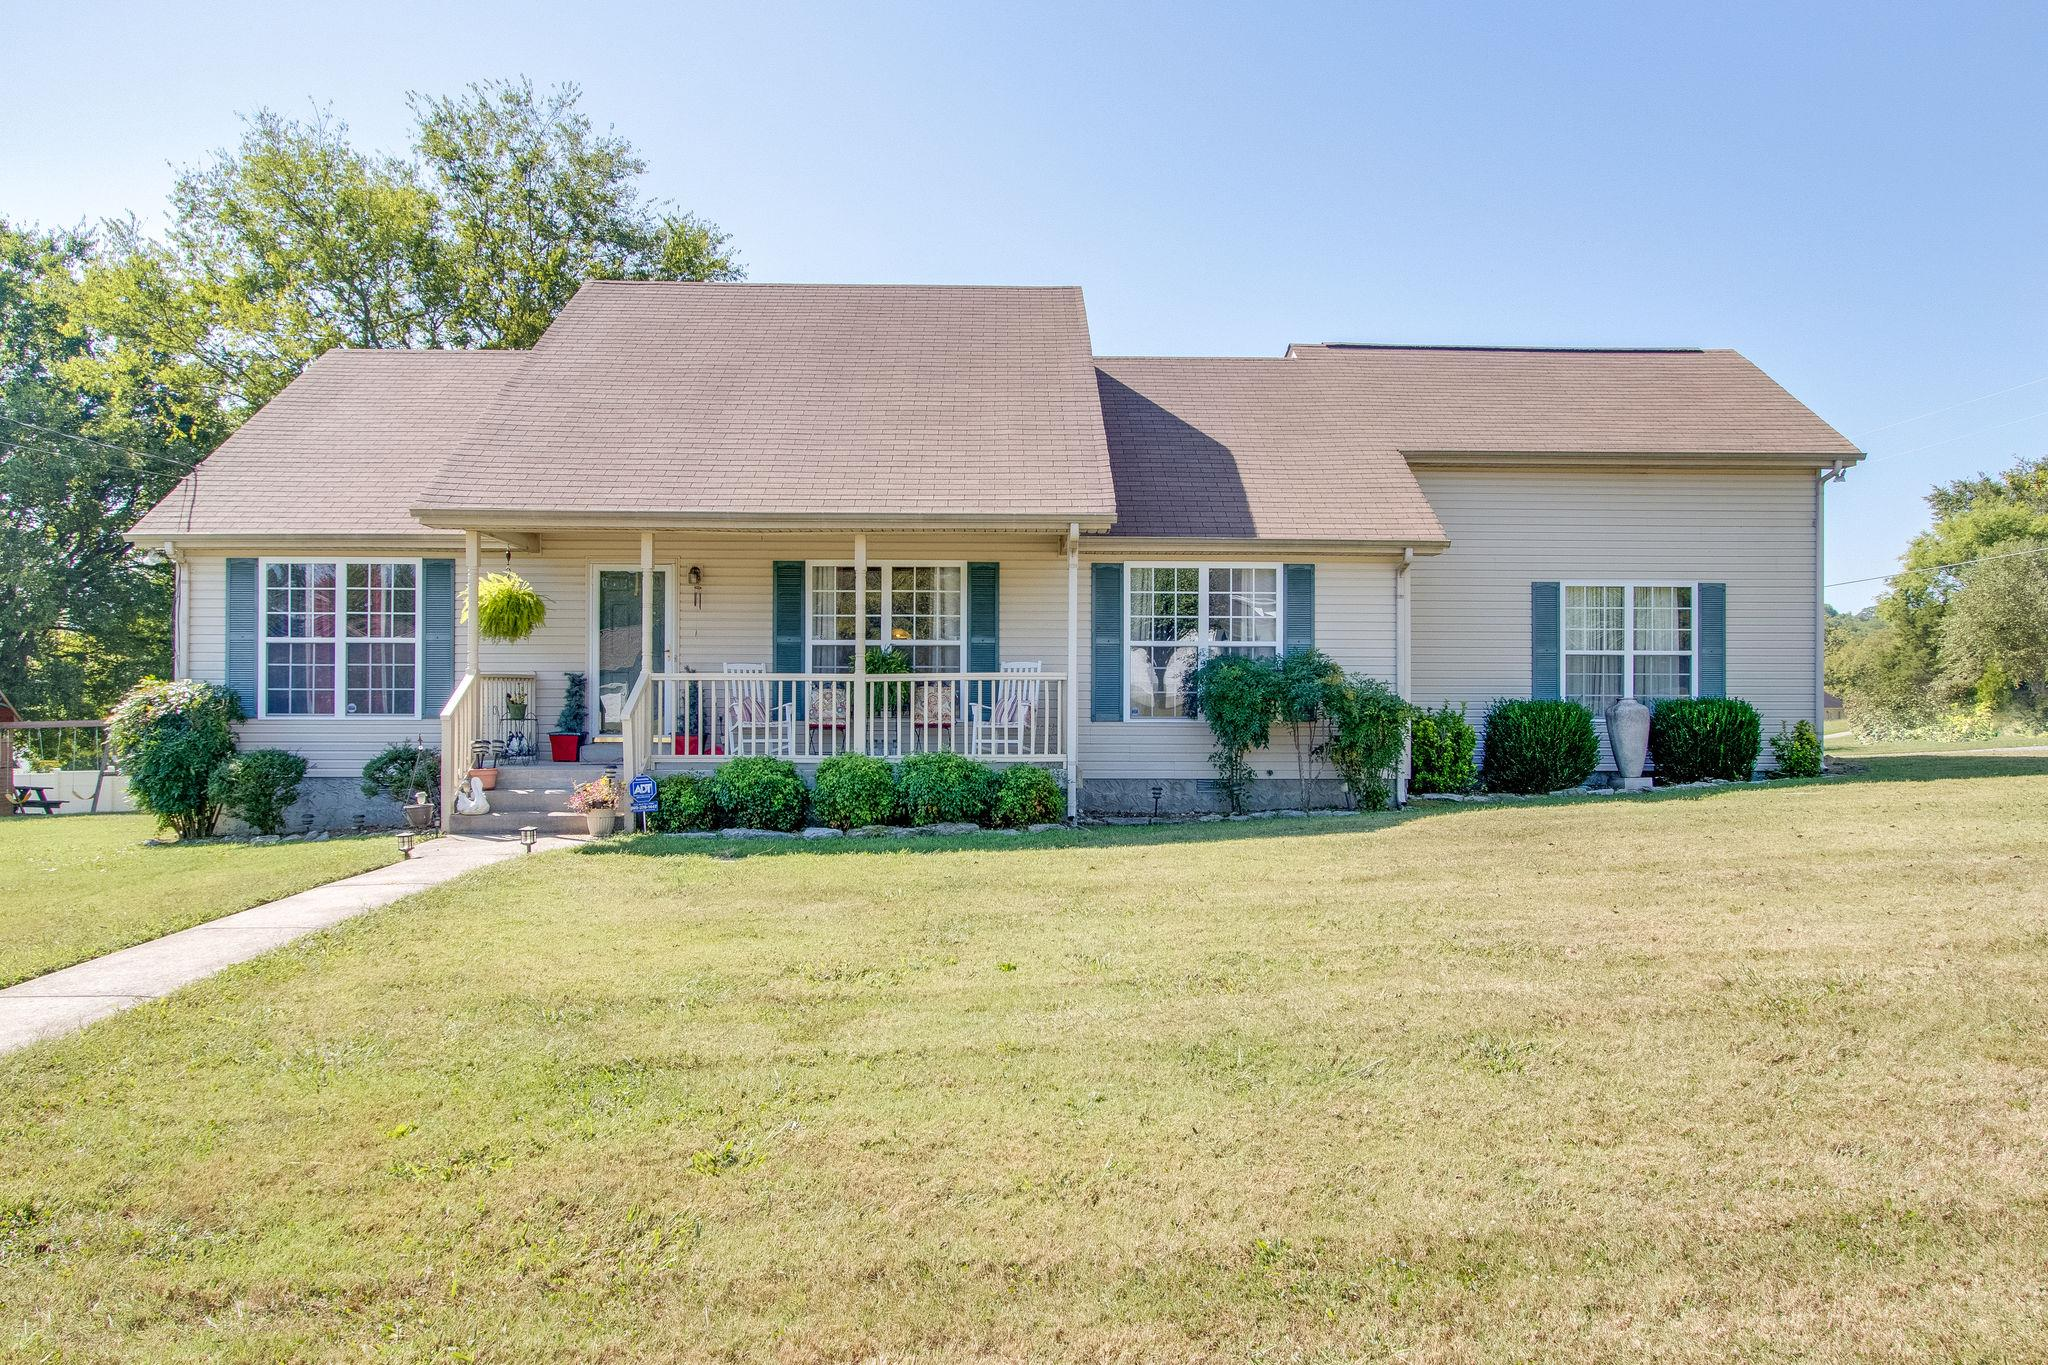 500 Snow Chief Ct, Watertown, TN 37184 - Watertown, TN real estate listing